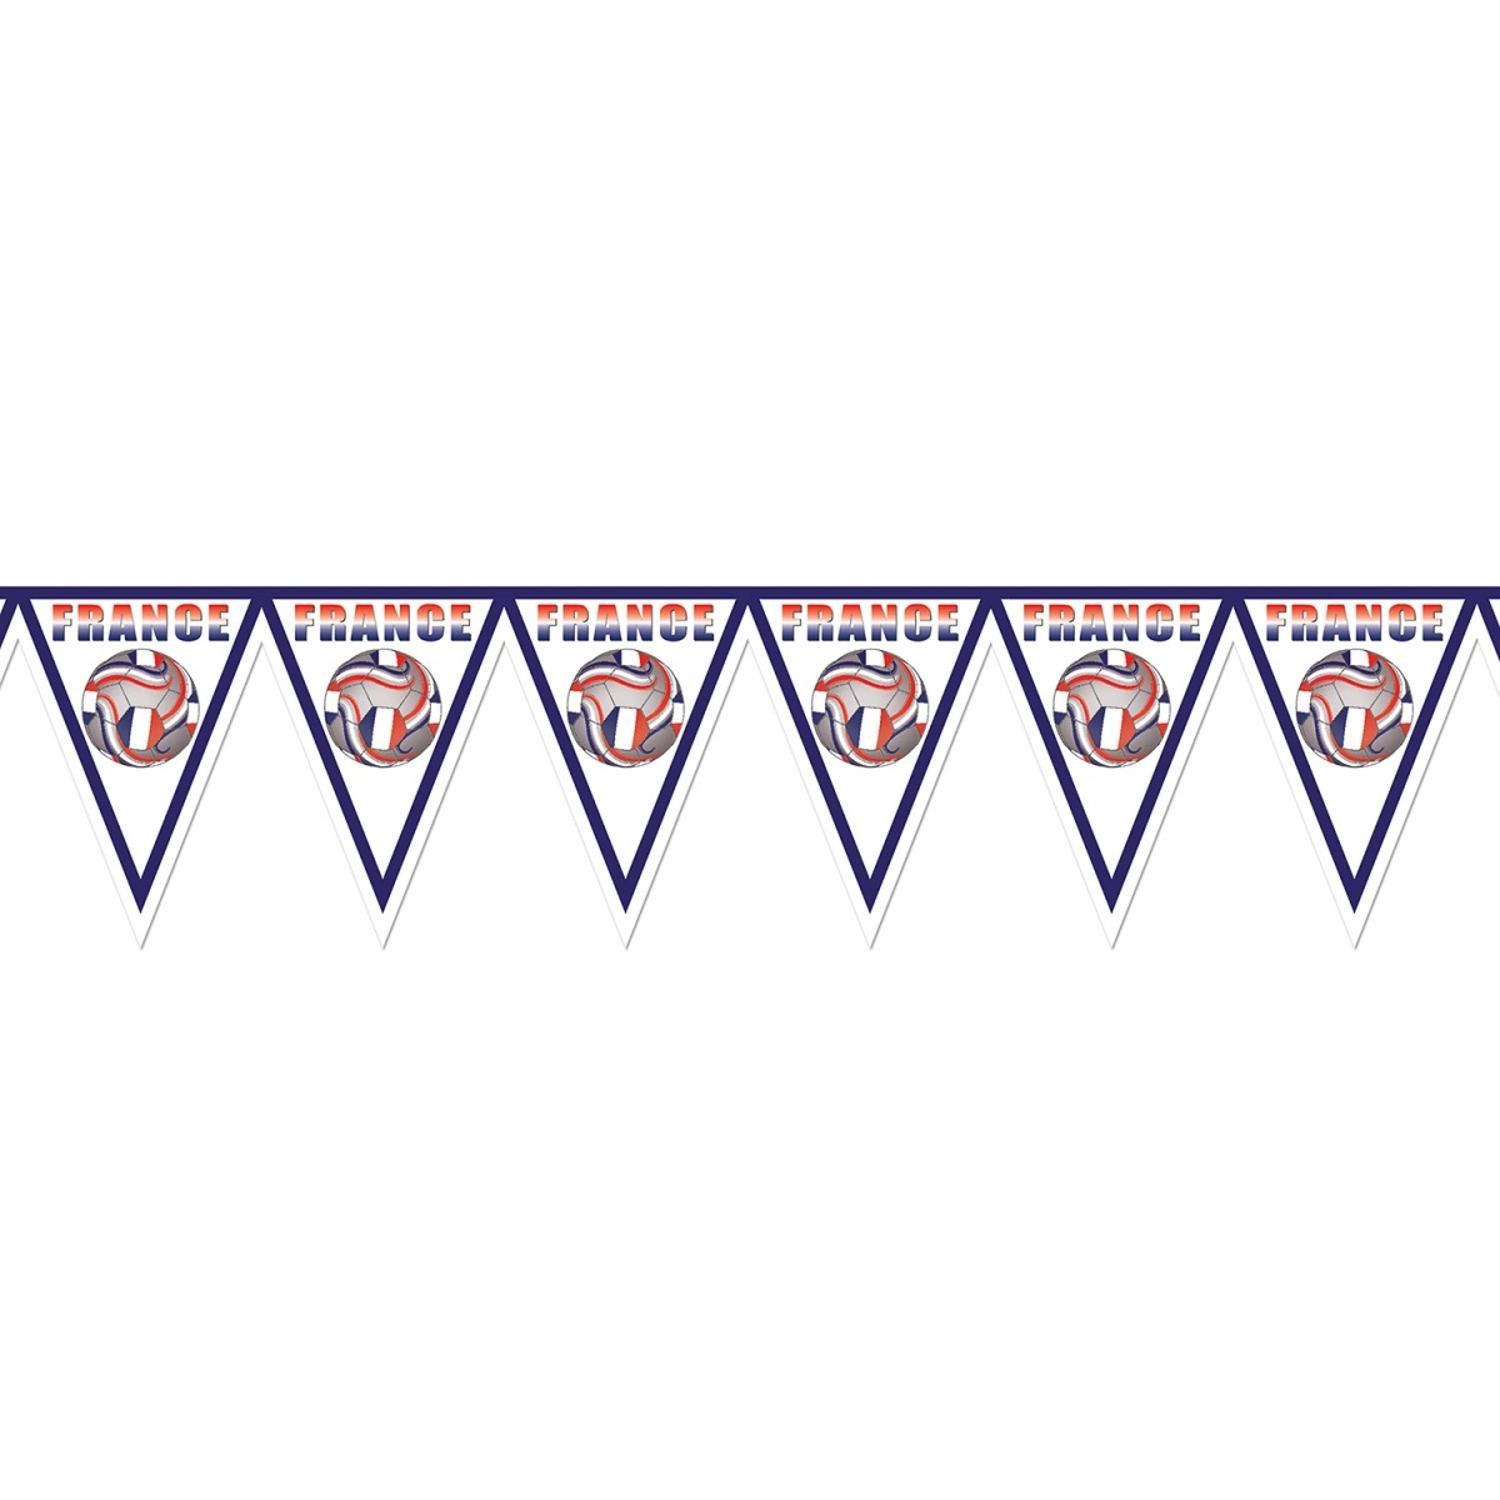 Pack of 6 Red, White and Blue ''France'' Soccer Themed Pennant Banner Party Decorations 7.4'